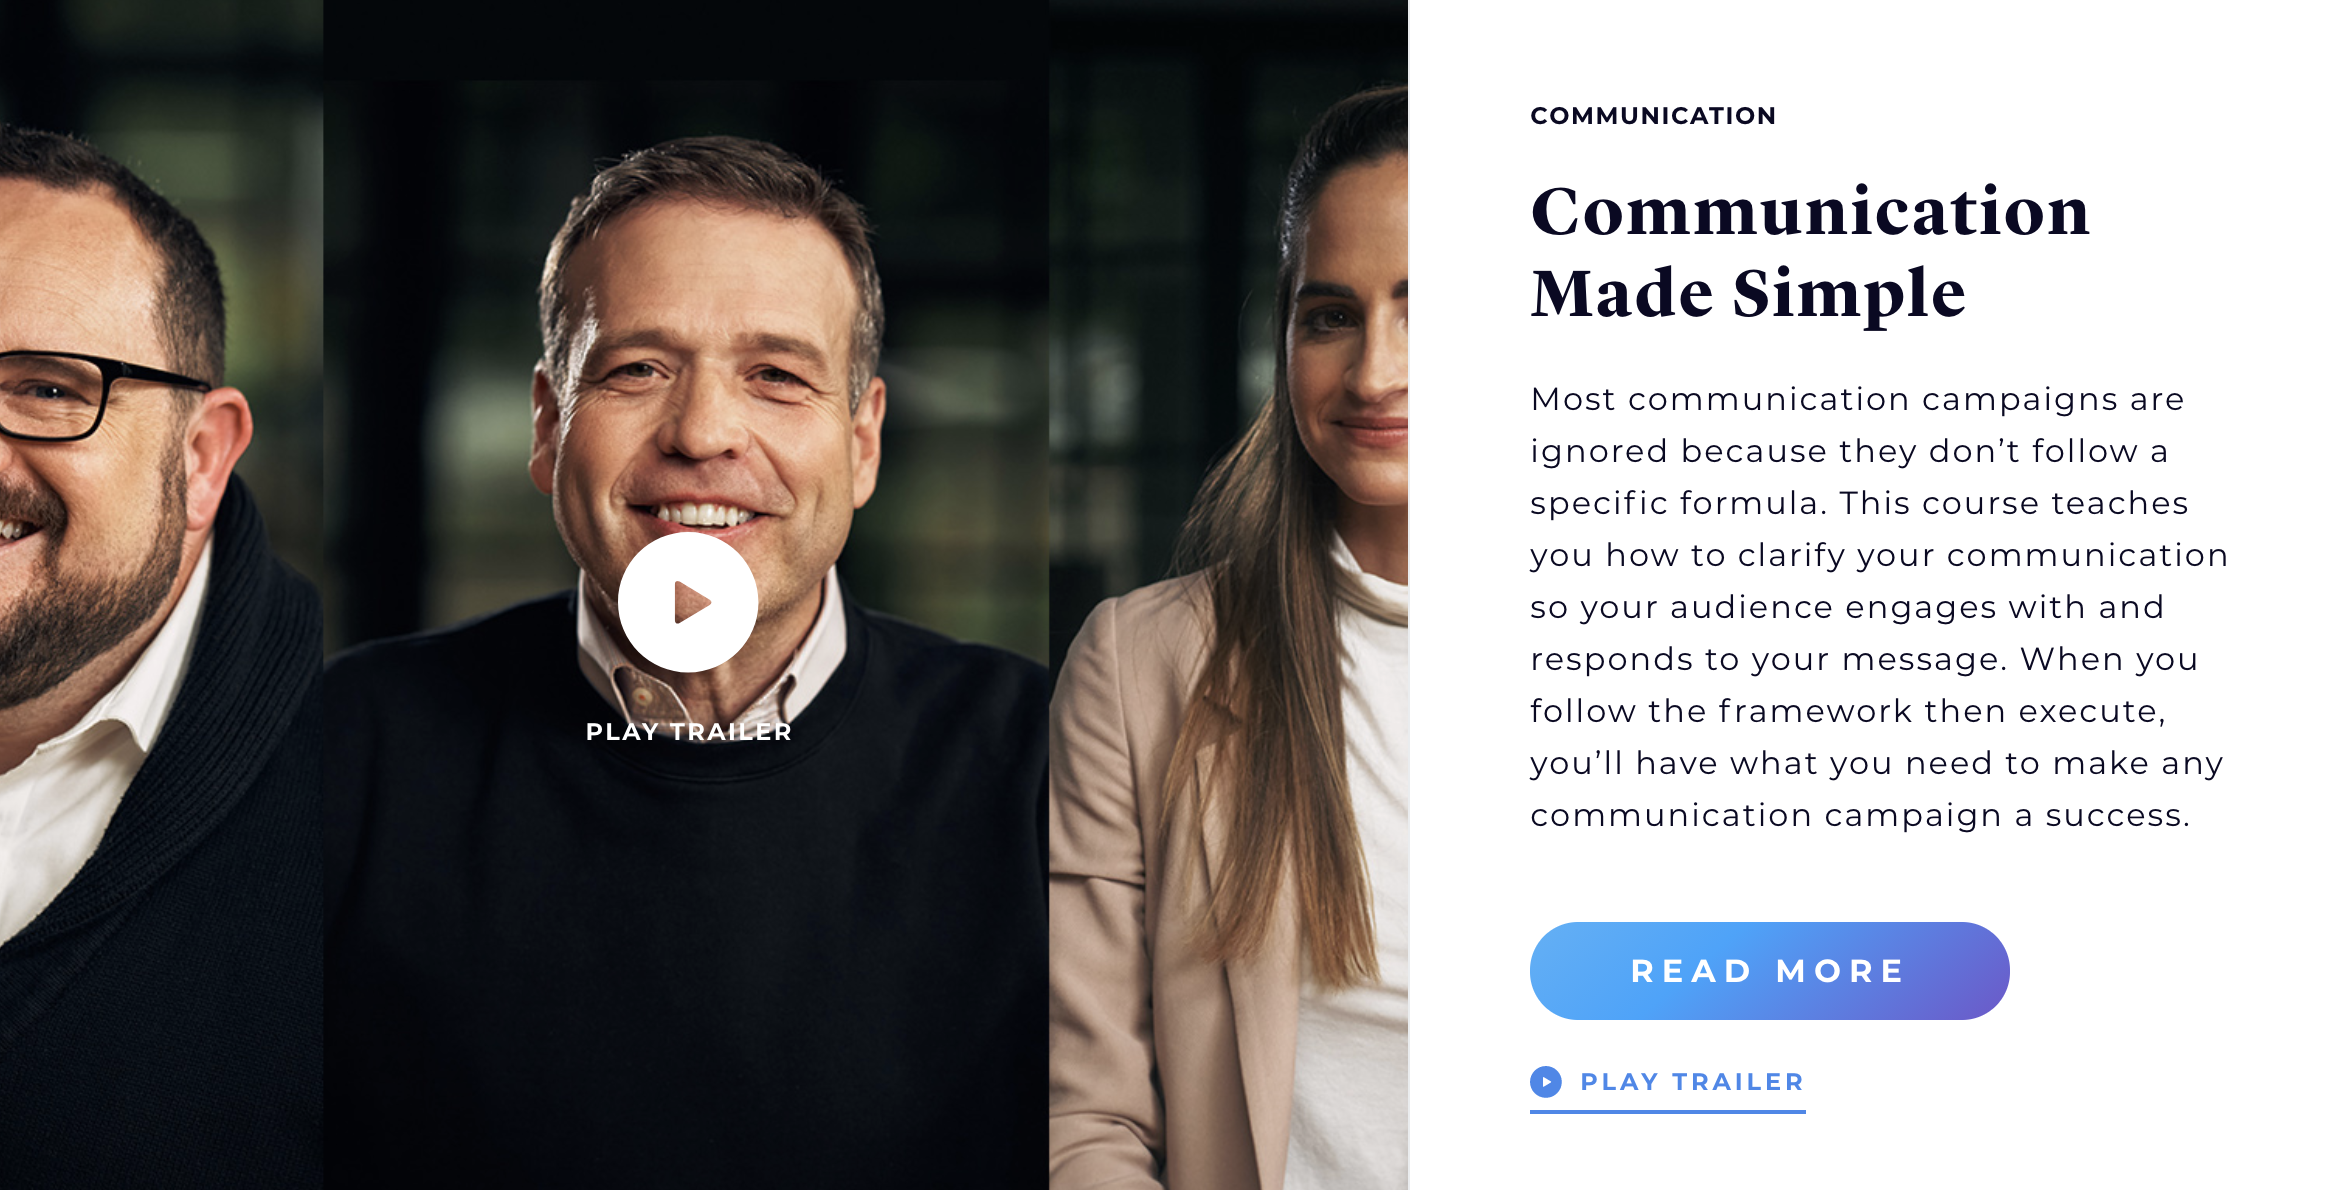 Course:Communication Made Simple